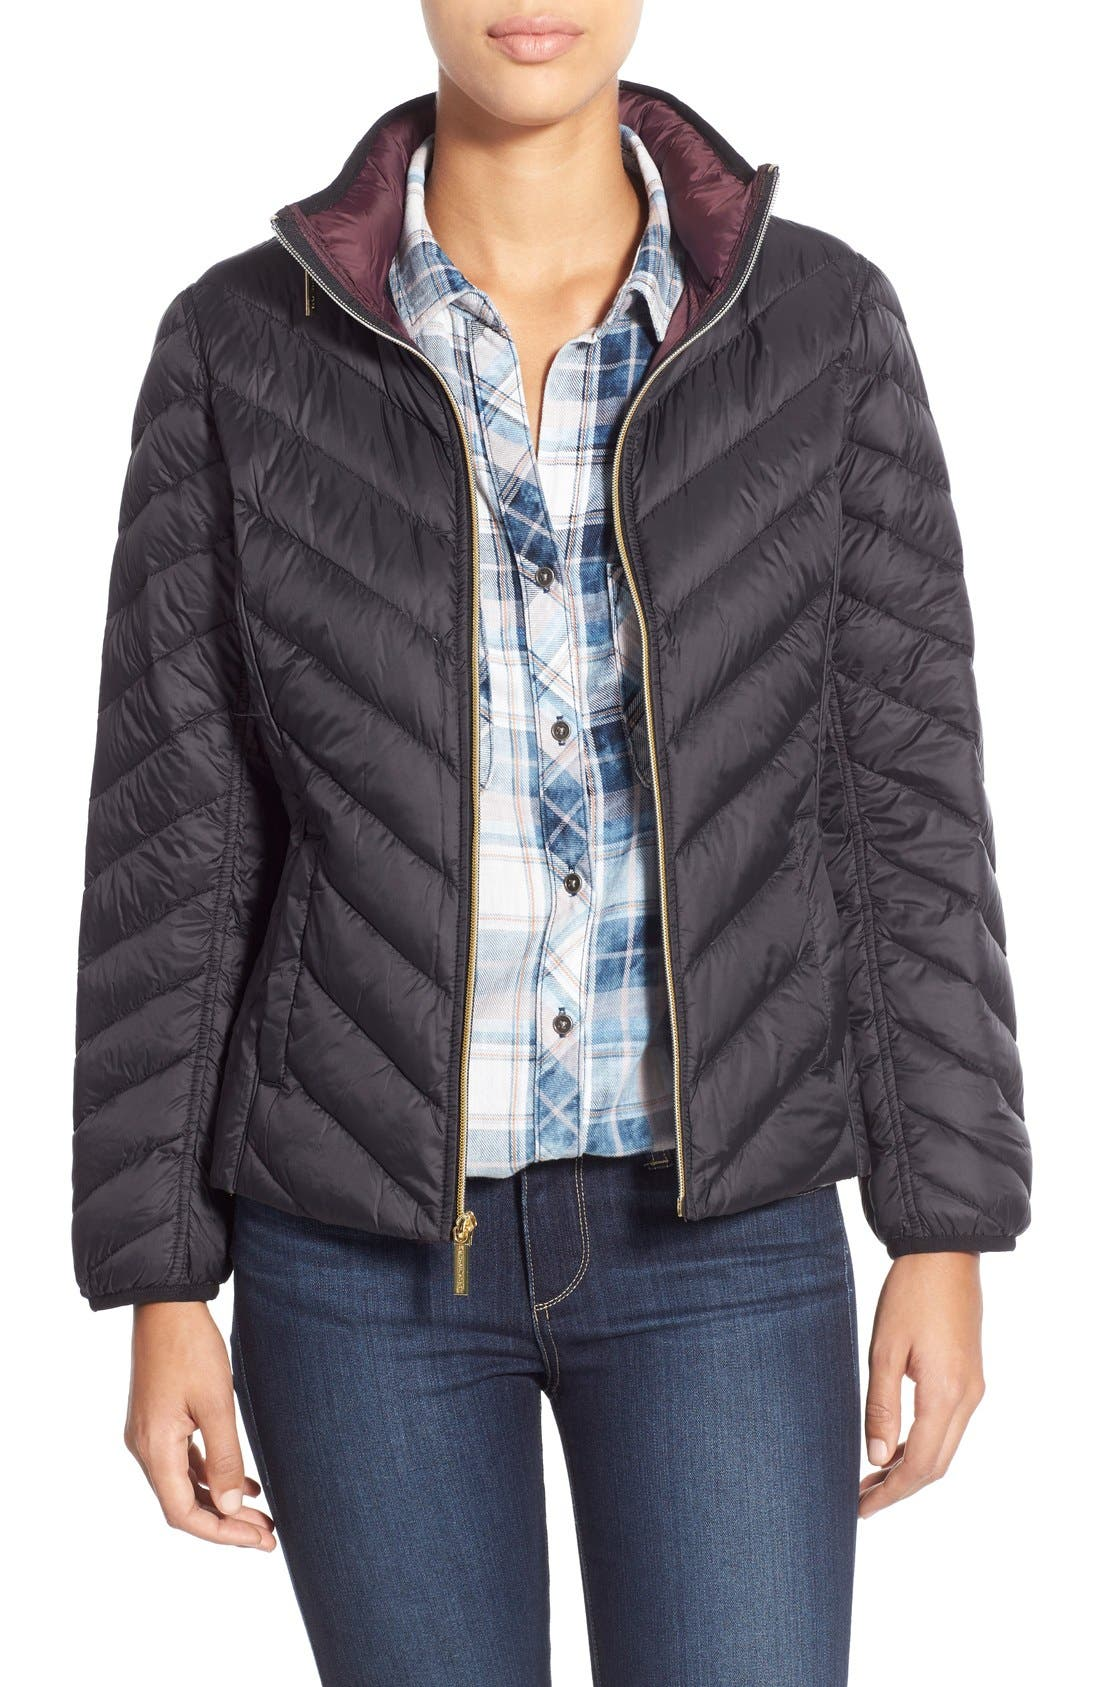 Packable Down Jacket,                             Main thumbnail 1, color,                             001